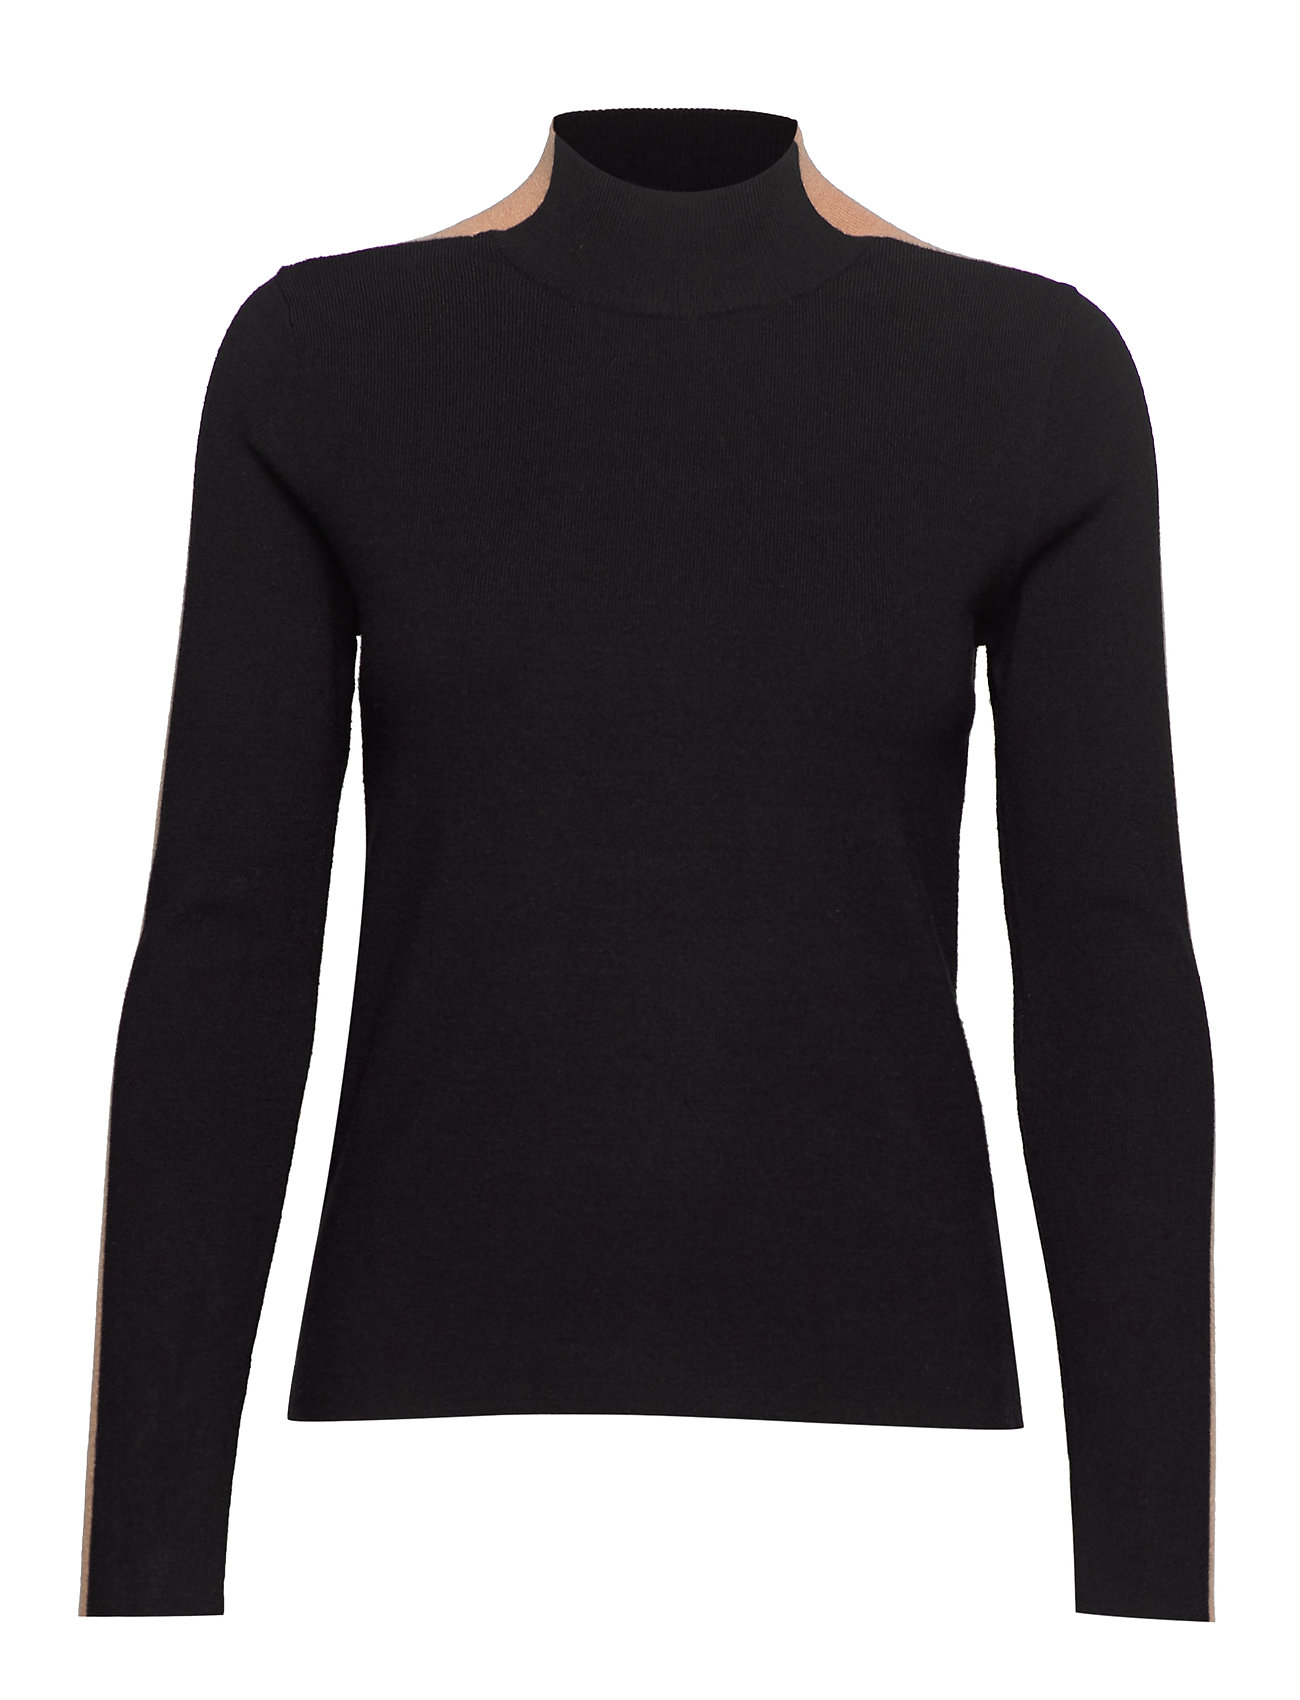 Mango Contrast knit sweater - BLACK